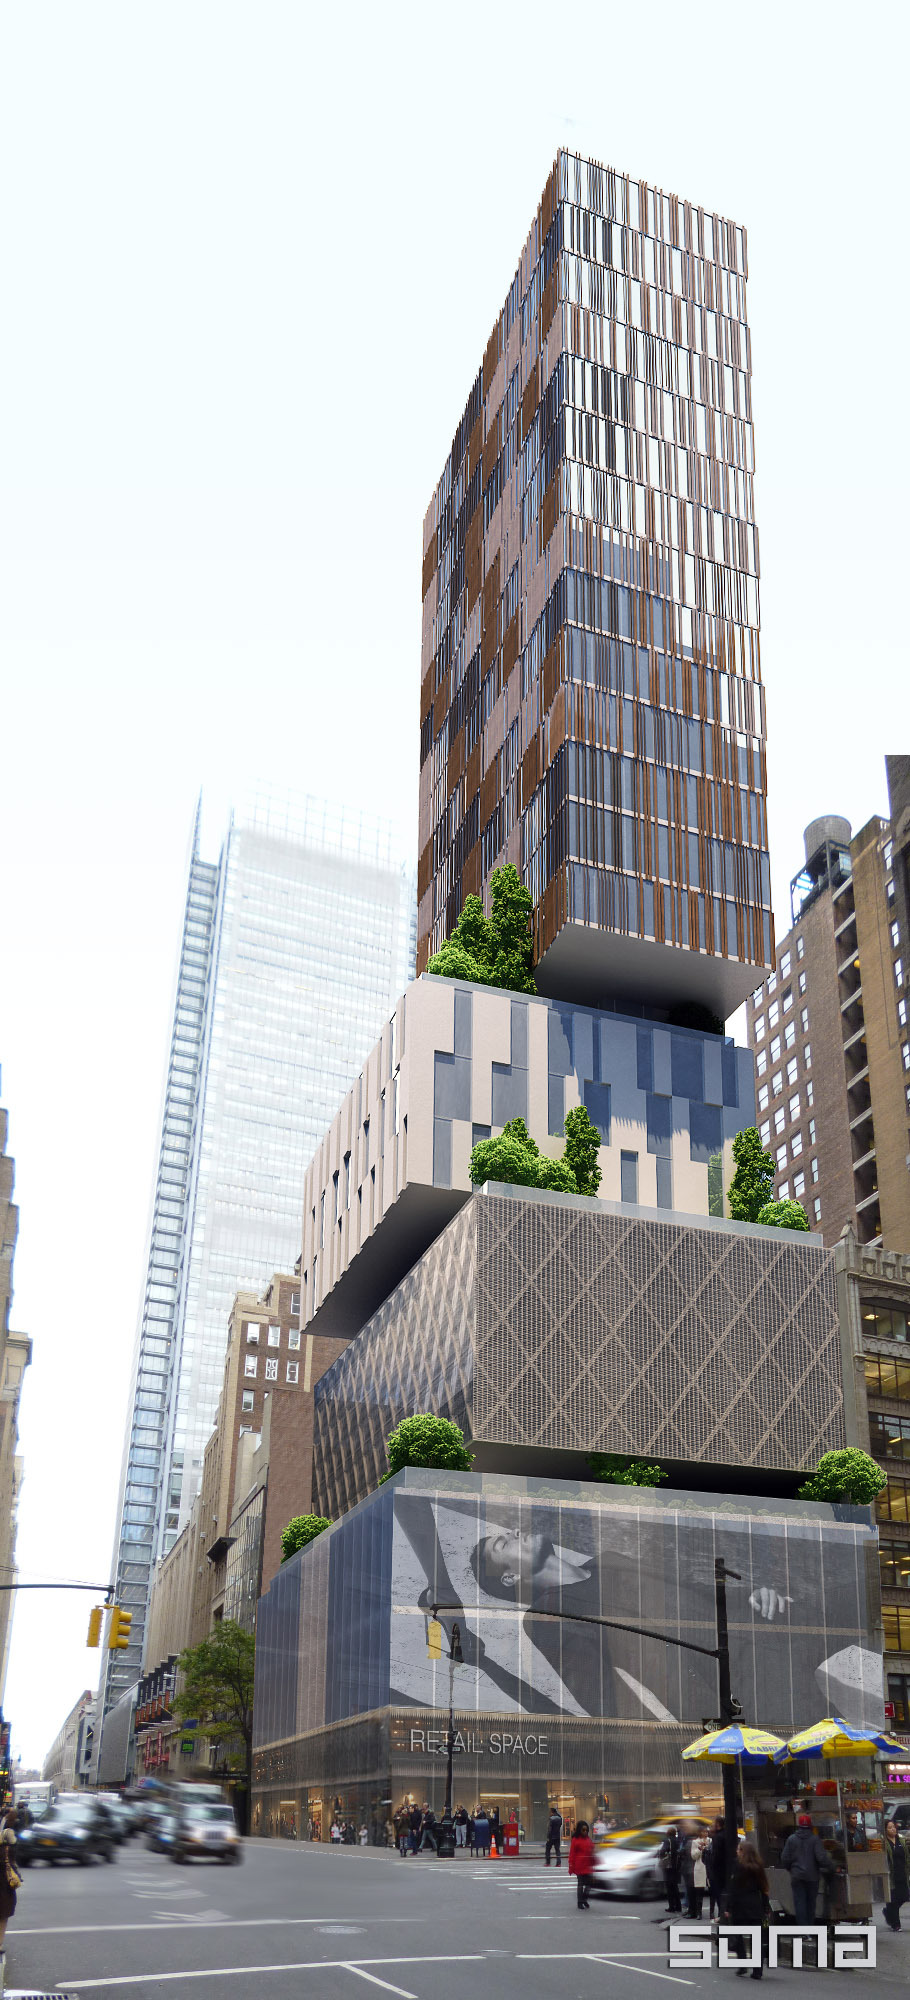 Dream hotel times square soma architects archinect for Design hotel 1690